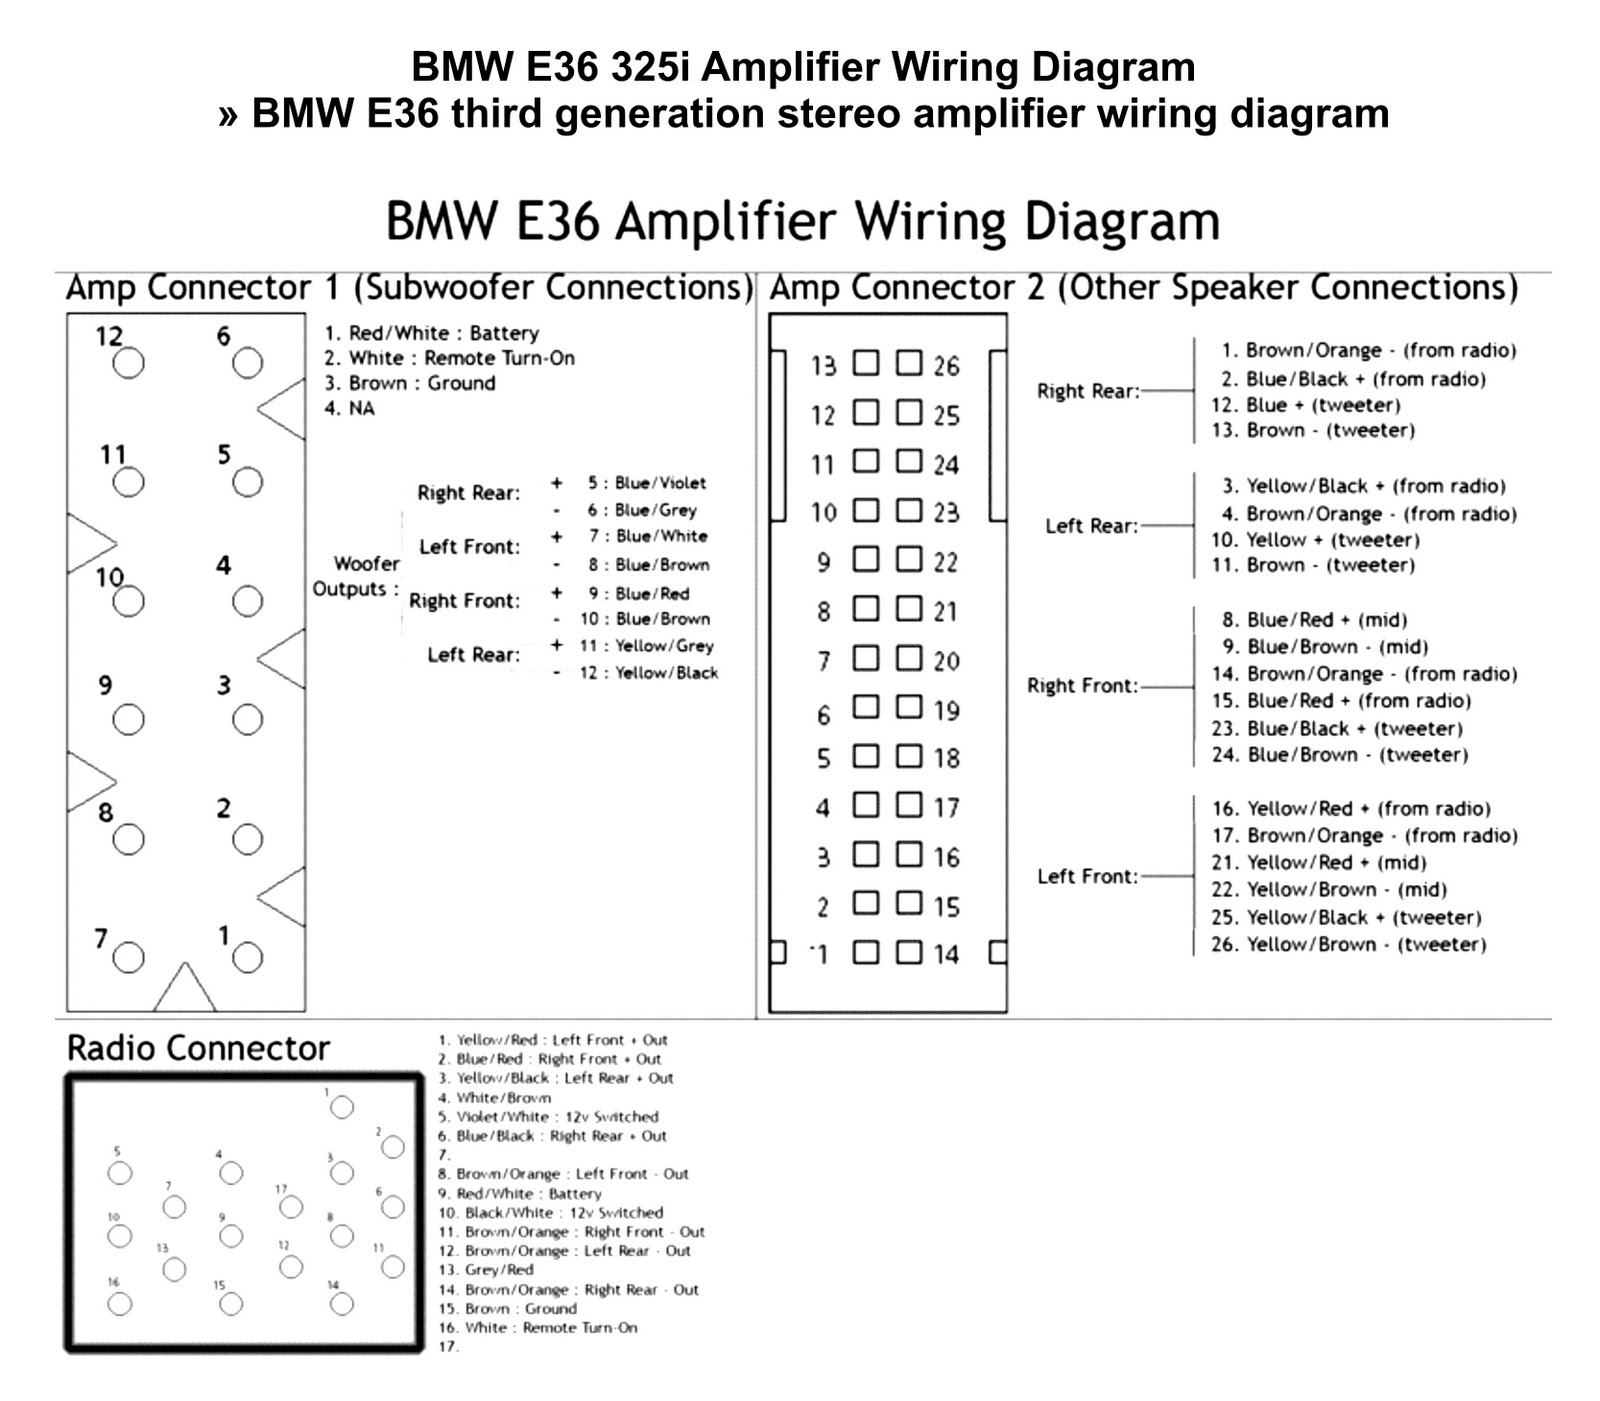 bmw e36 radio harness wires - wiring diagram leak-warehouse-c -  leak-warehouse-c.pasticceriagele.it  pasticceriagele.it